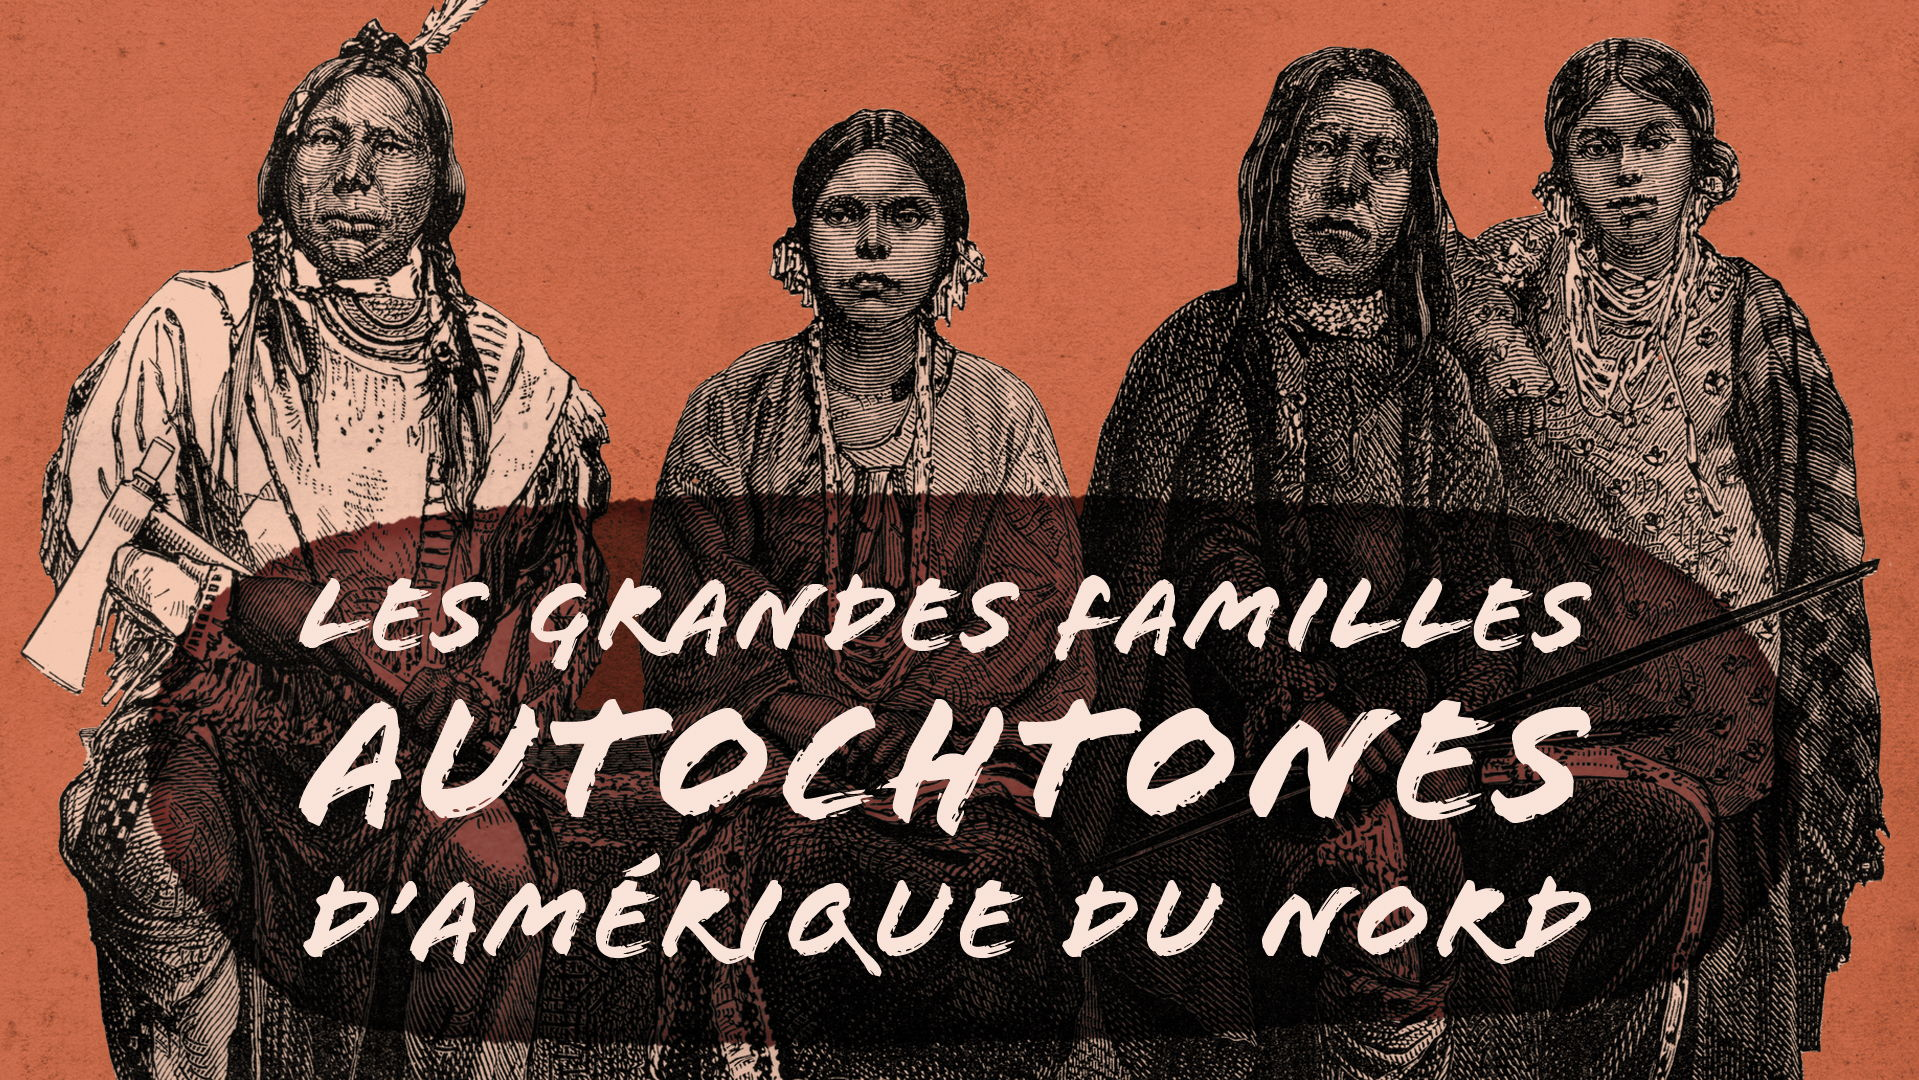 """the text """"LES GRANDES FAMILLE AUTOCHTONES D'AMÉRIQUE DU NORD"""" with the drawing of four indigenous people as background"""